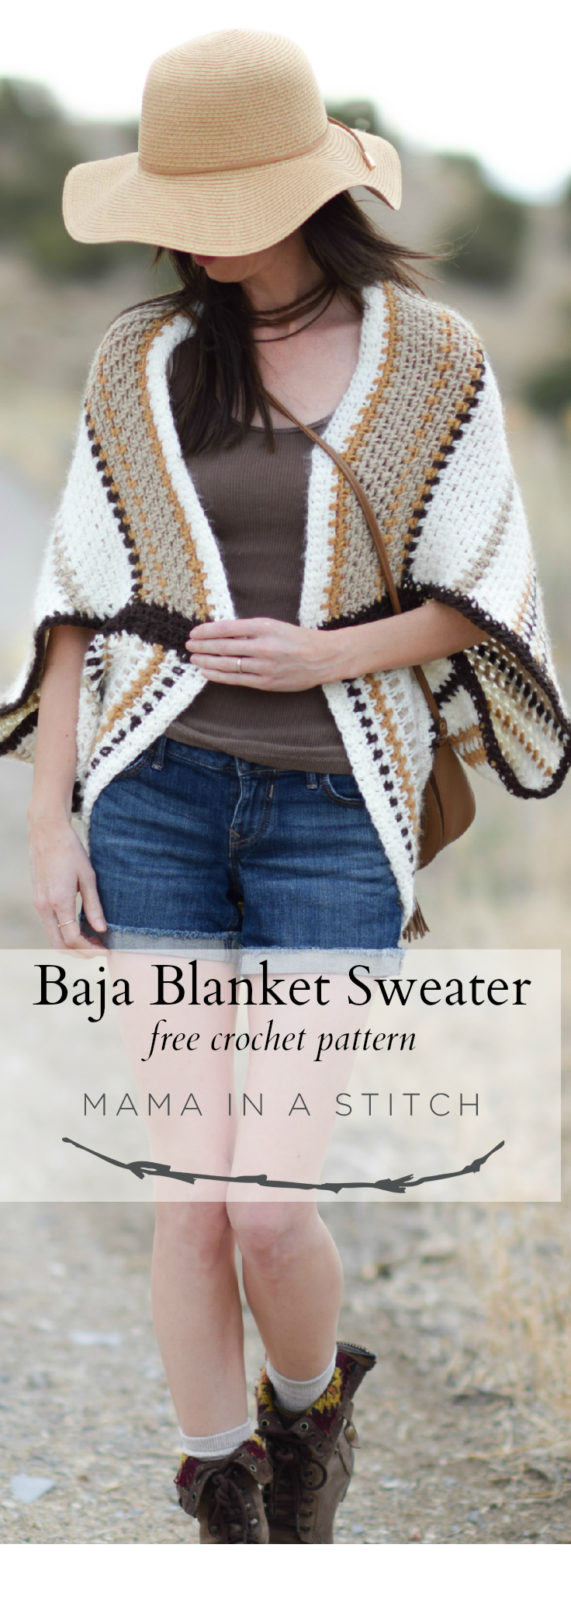 Baja Blanket Sweater Crochet Pattern ? Mama In A Stitch